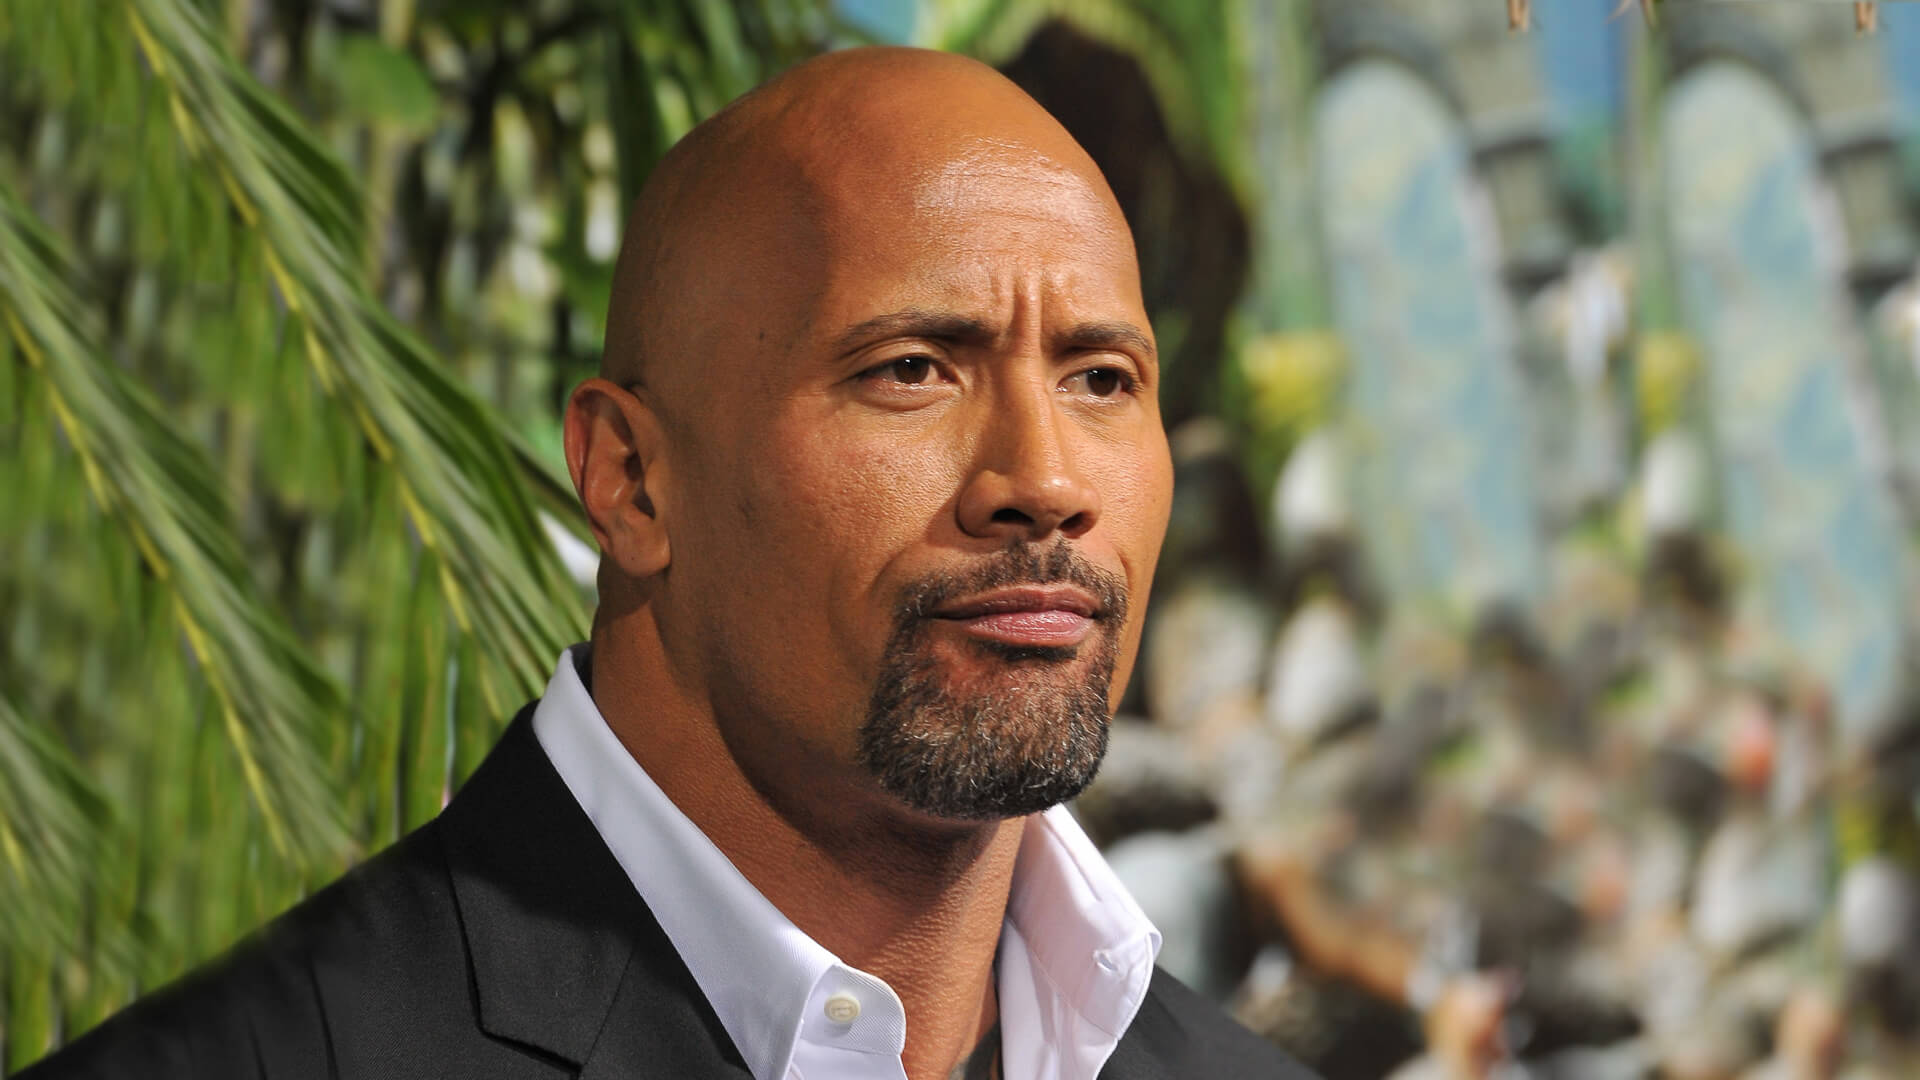 Dwayne 'The Rock' Johnson's Growing Net Worth as Highest Paid Actor